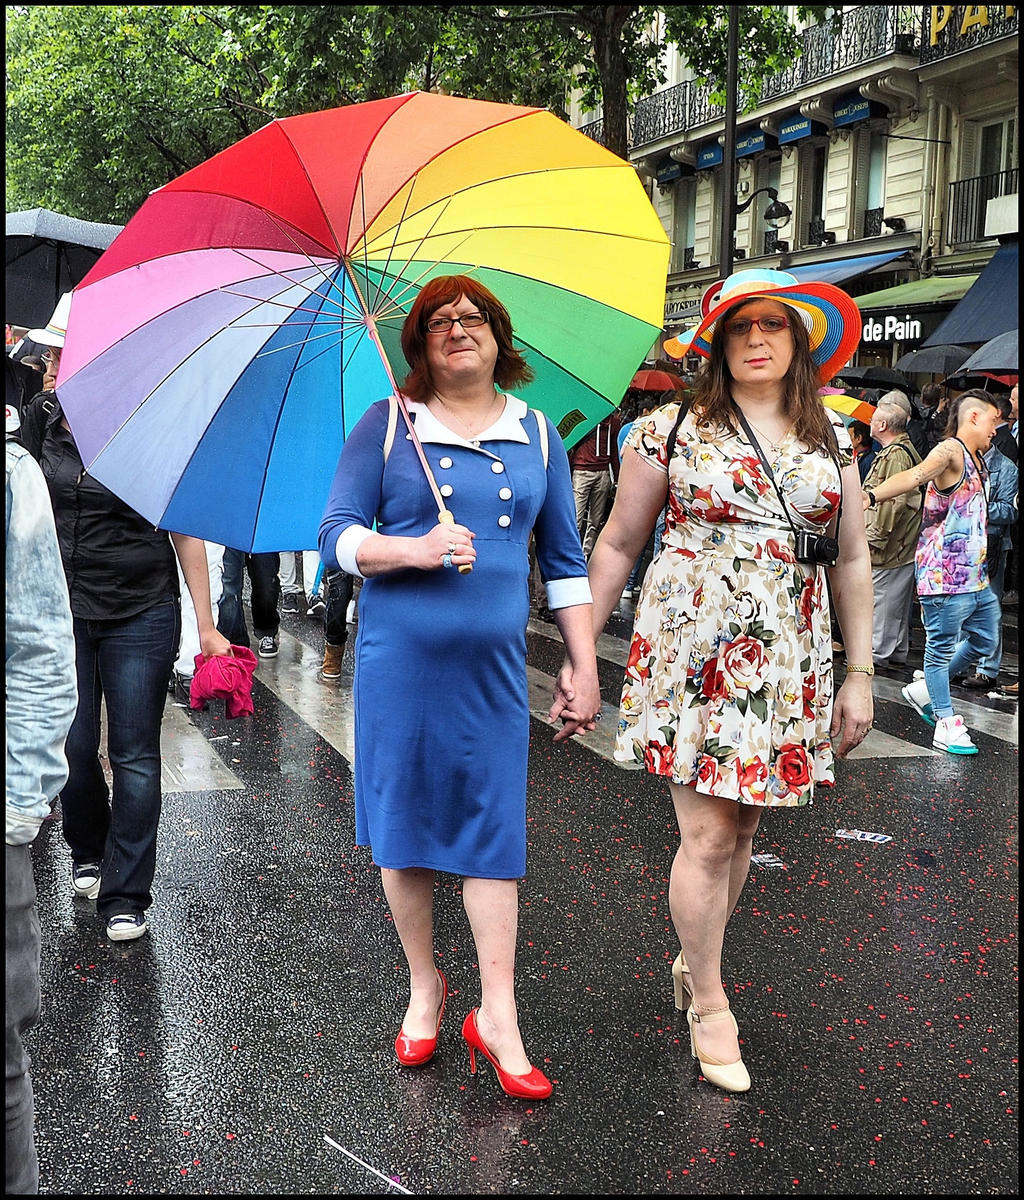 Gay Pride 2014 - Paris - 12 by SUDOR